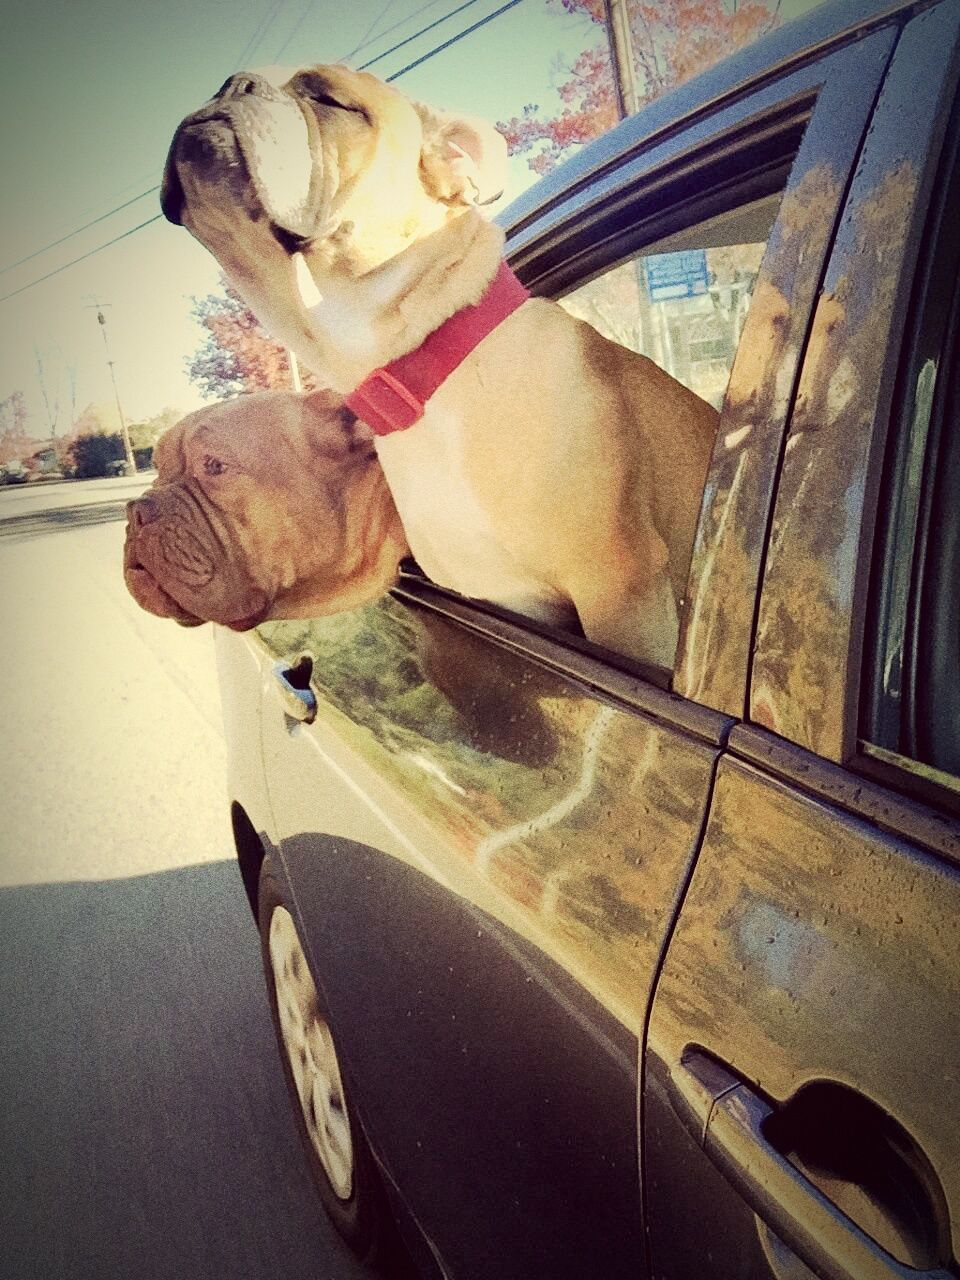 pets, domestic animals, dog, animal themes, one animal, mammal, car, window, land vehicle, transportation, pet collar, looking through window, no people, day, outdoors, close-up